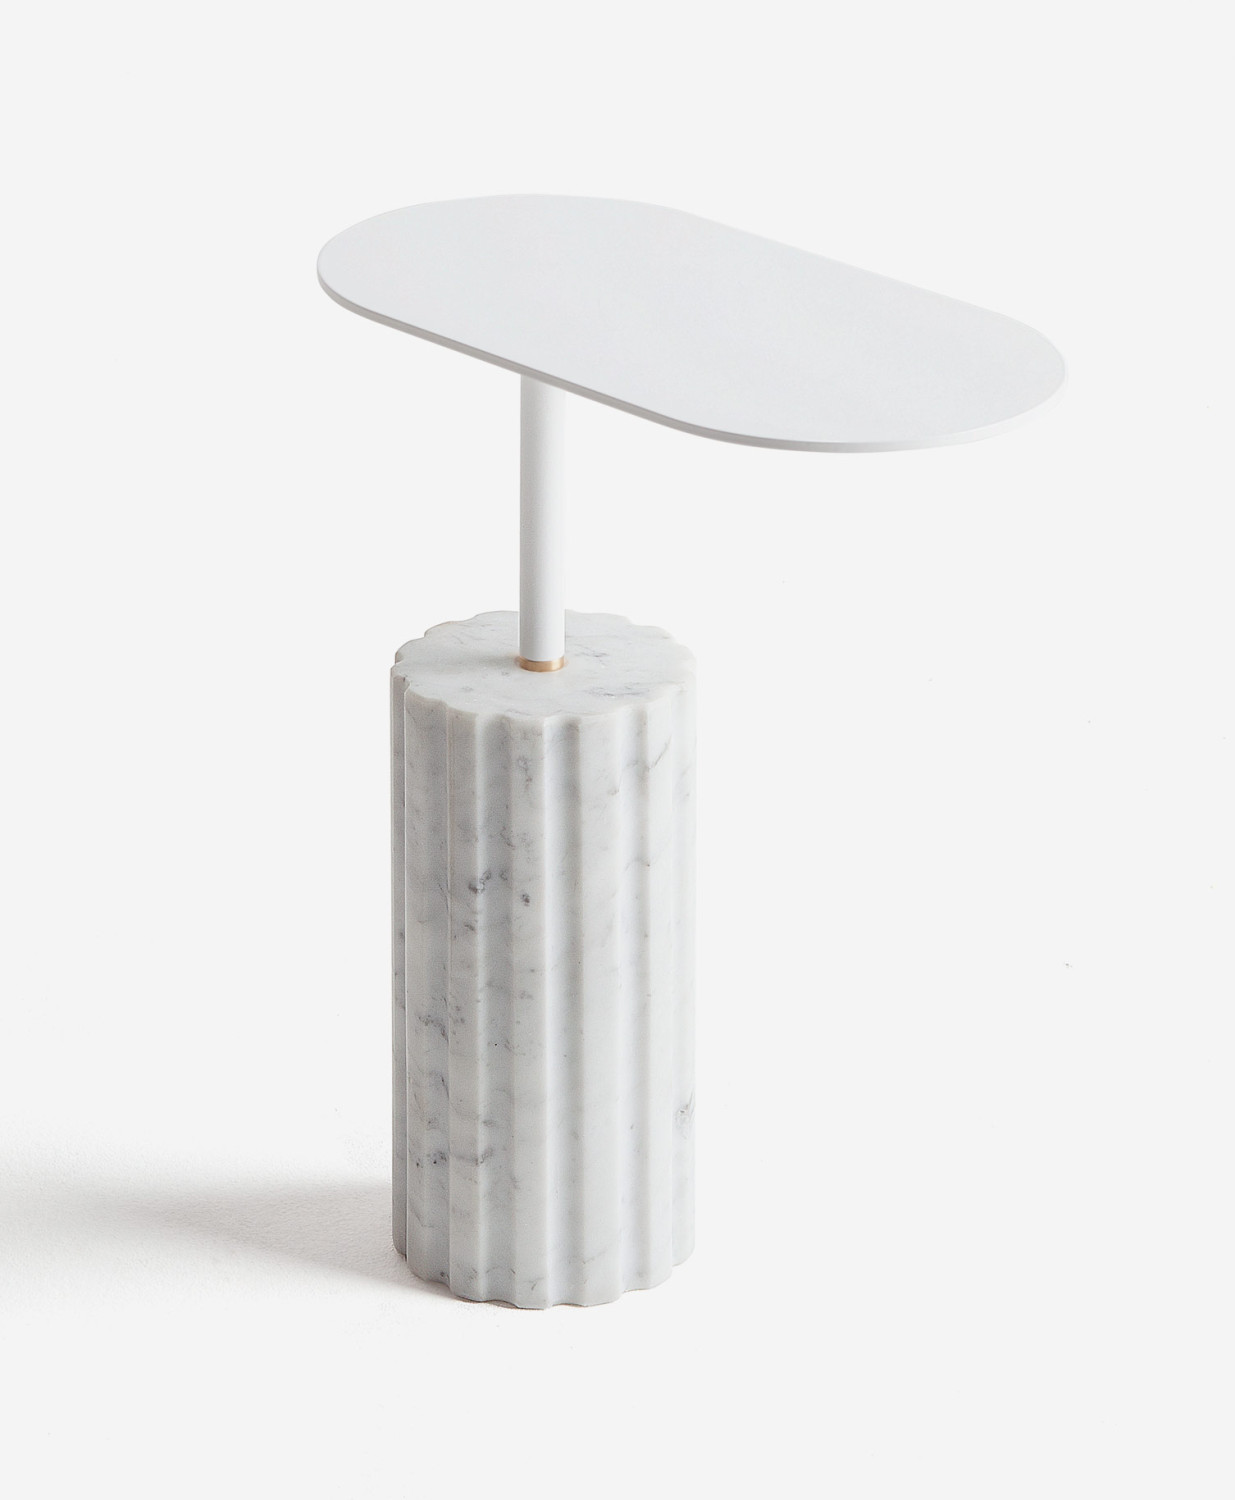 ampliable_column_side_table